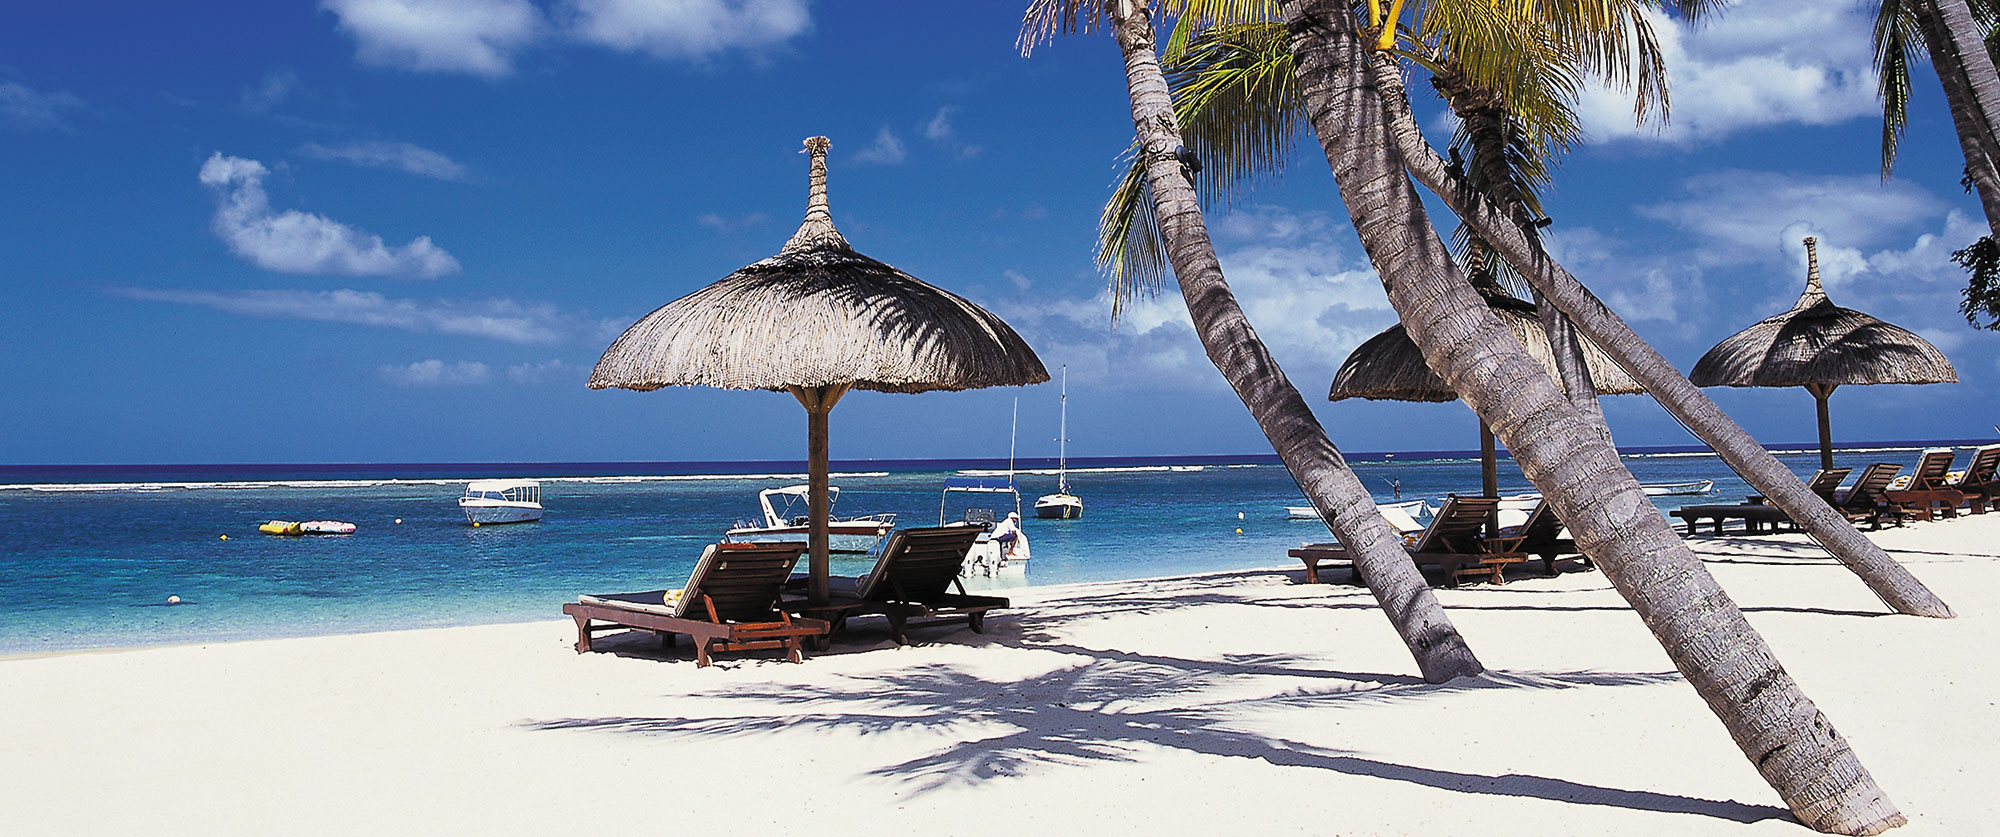 Mauritius - Travel Specialist - Vacation - Getaway